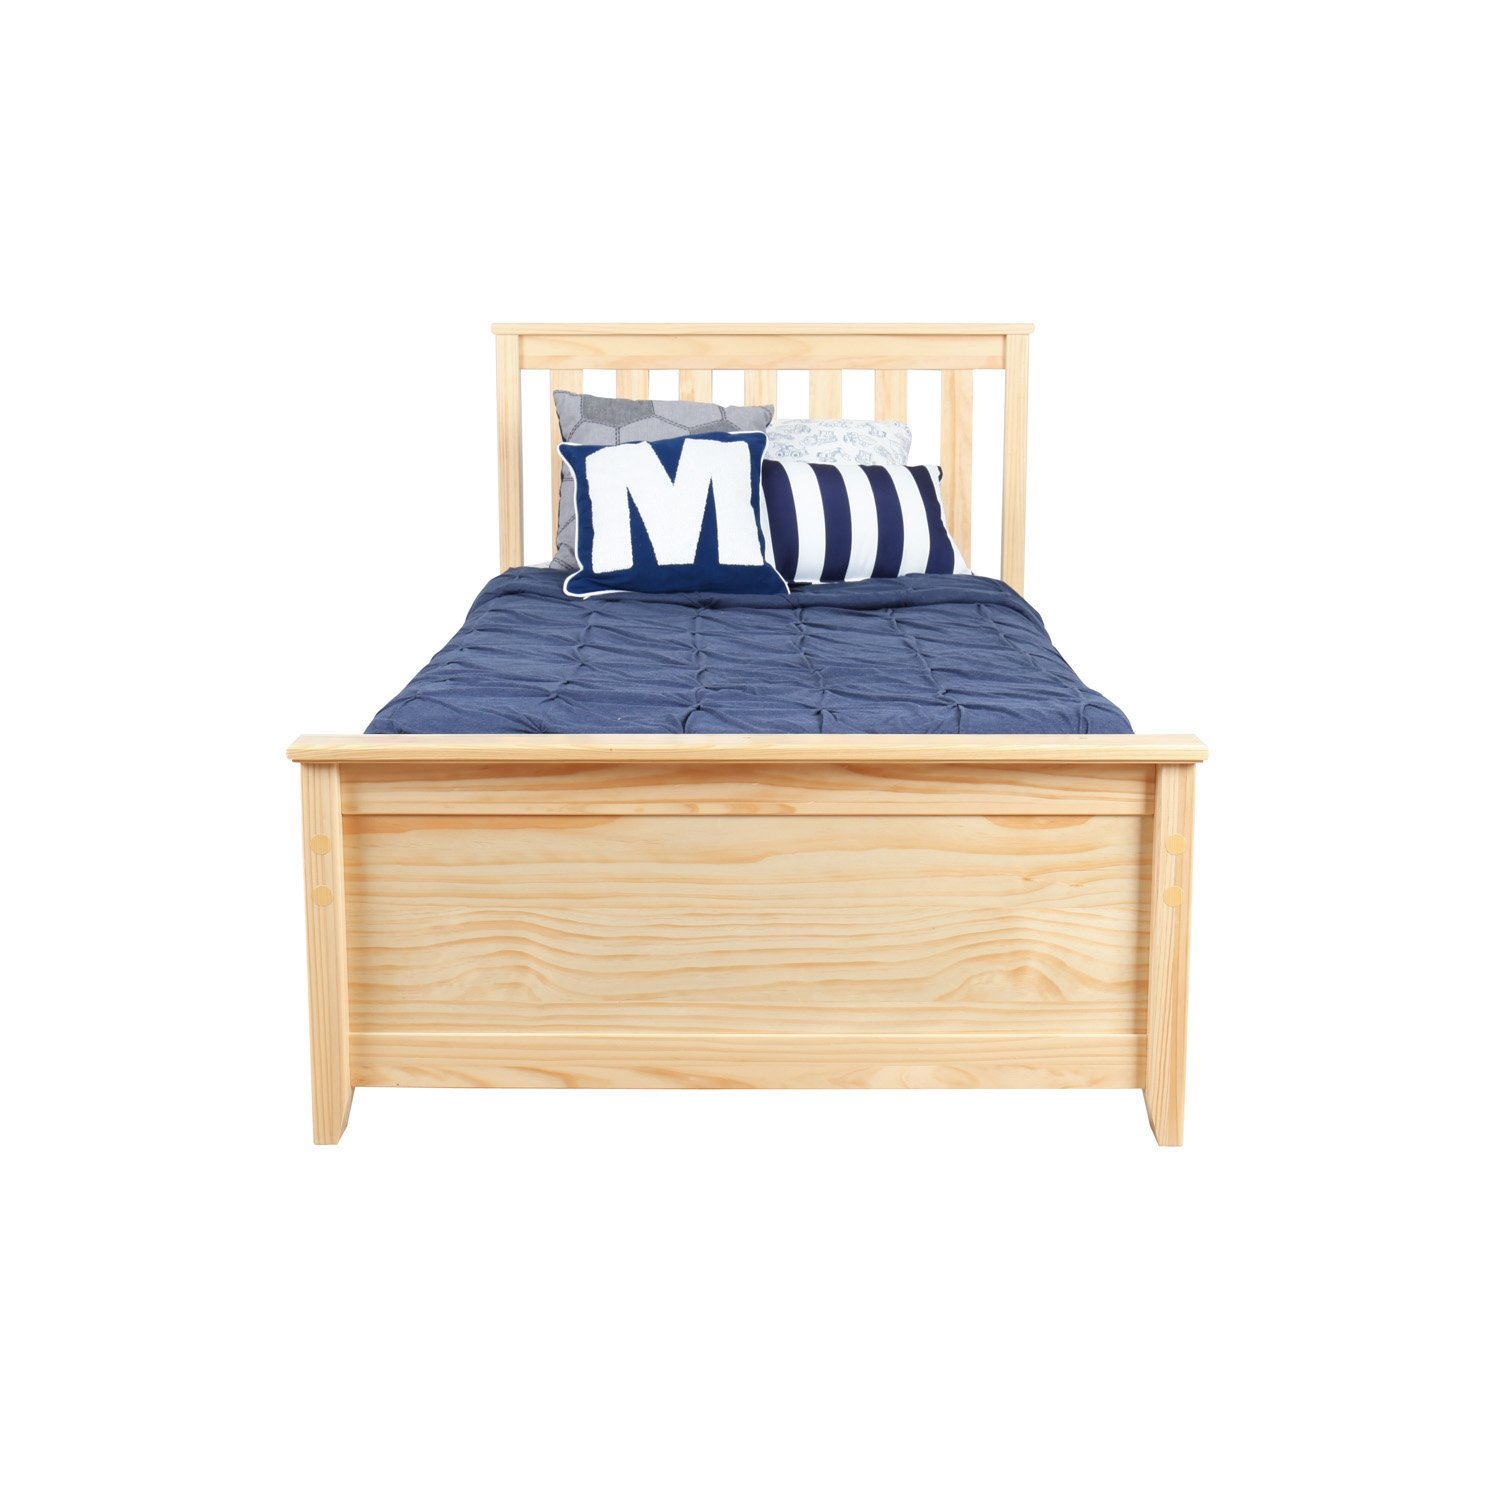 Max & Lily Solid Wood Twin-Size Bed with Under Bed Storage Drawers, Natural by Max & Lily (Image #4)